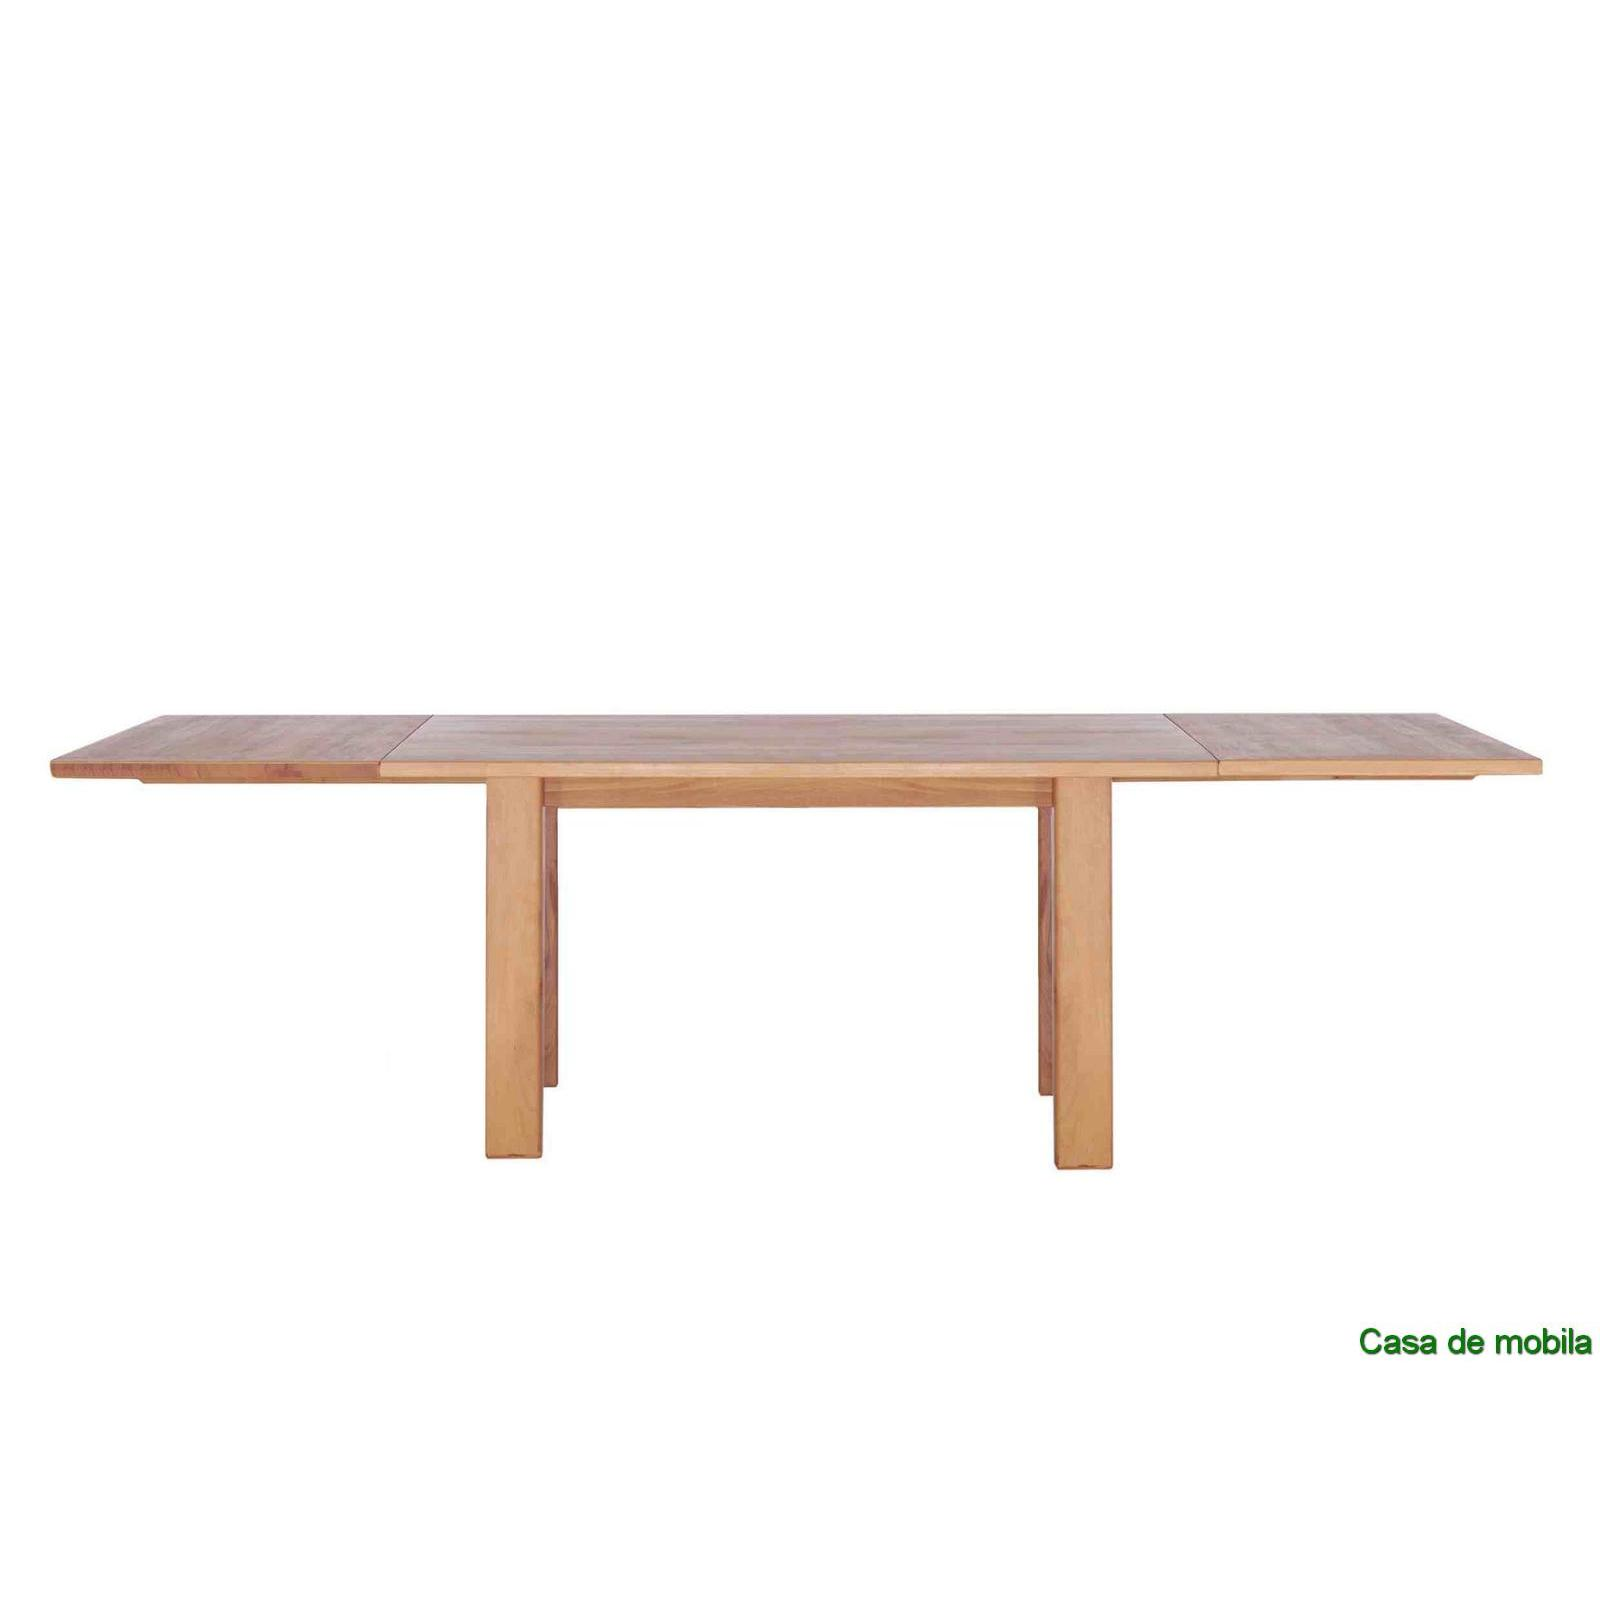 Cor Esstische Solid Wood Dining Table 200x95 Cm Table Core Beech Solid